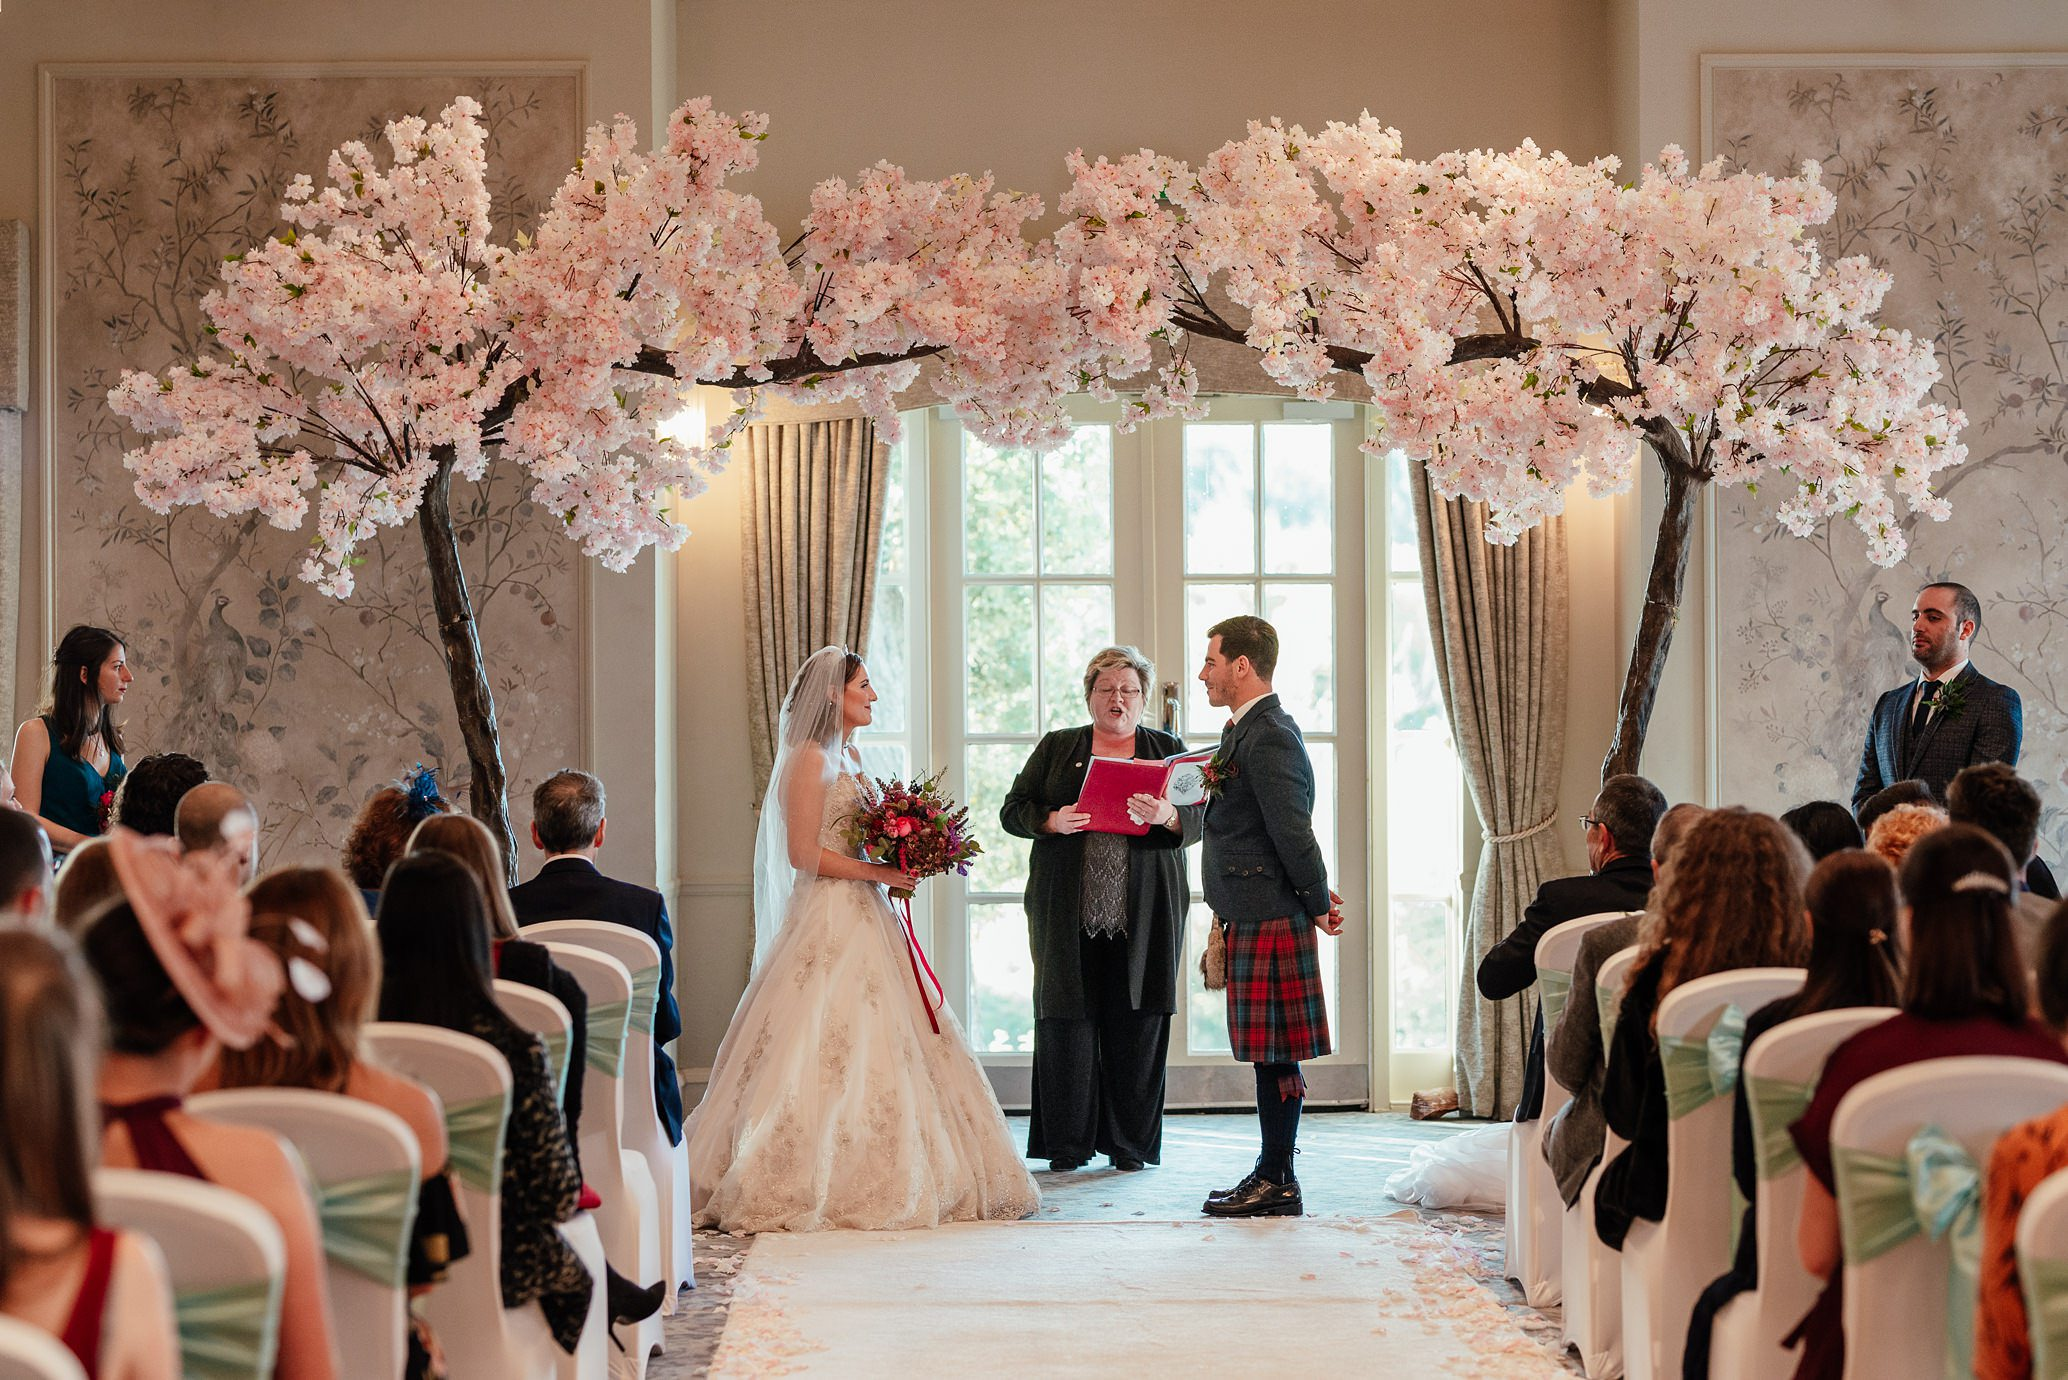 maryculter house hotel aberdeenshire wedding ceremony in ballroom with cherry blossoms